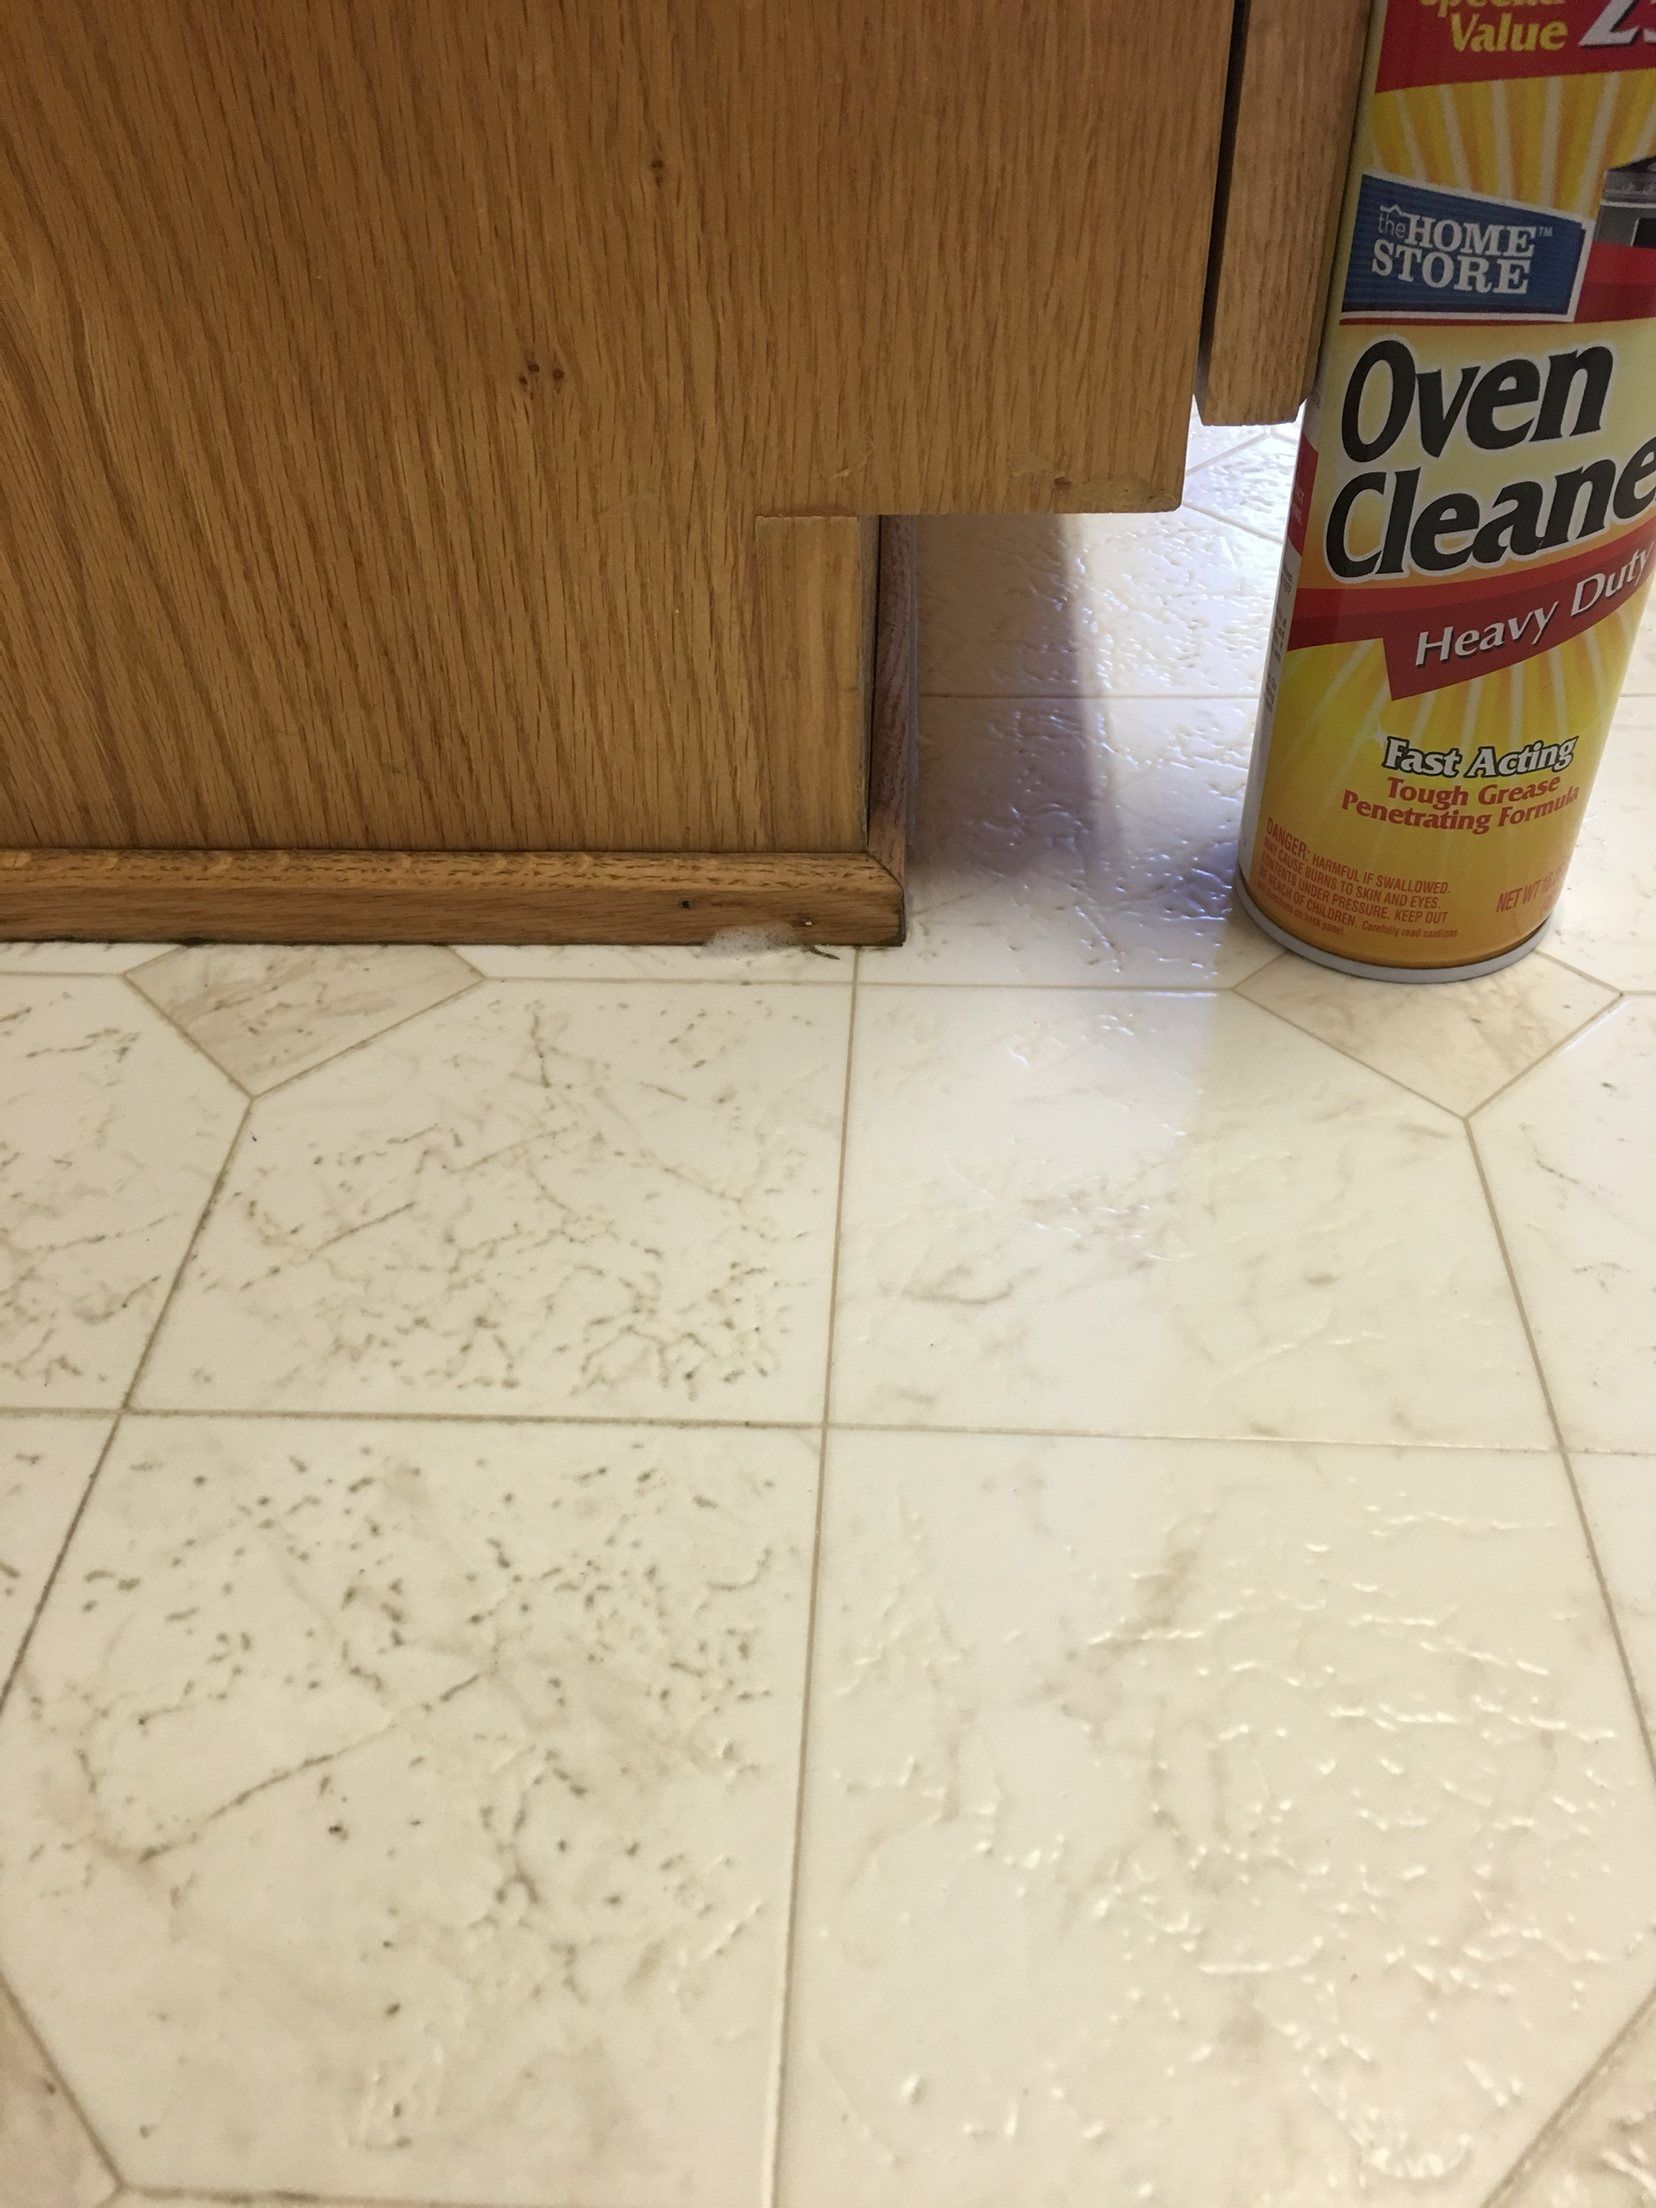 Holzvertäfelung Reparieren Cleaning Linoleum Floors Oven Cleaner With Lye Spray And Let Set